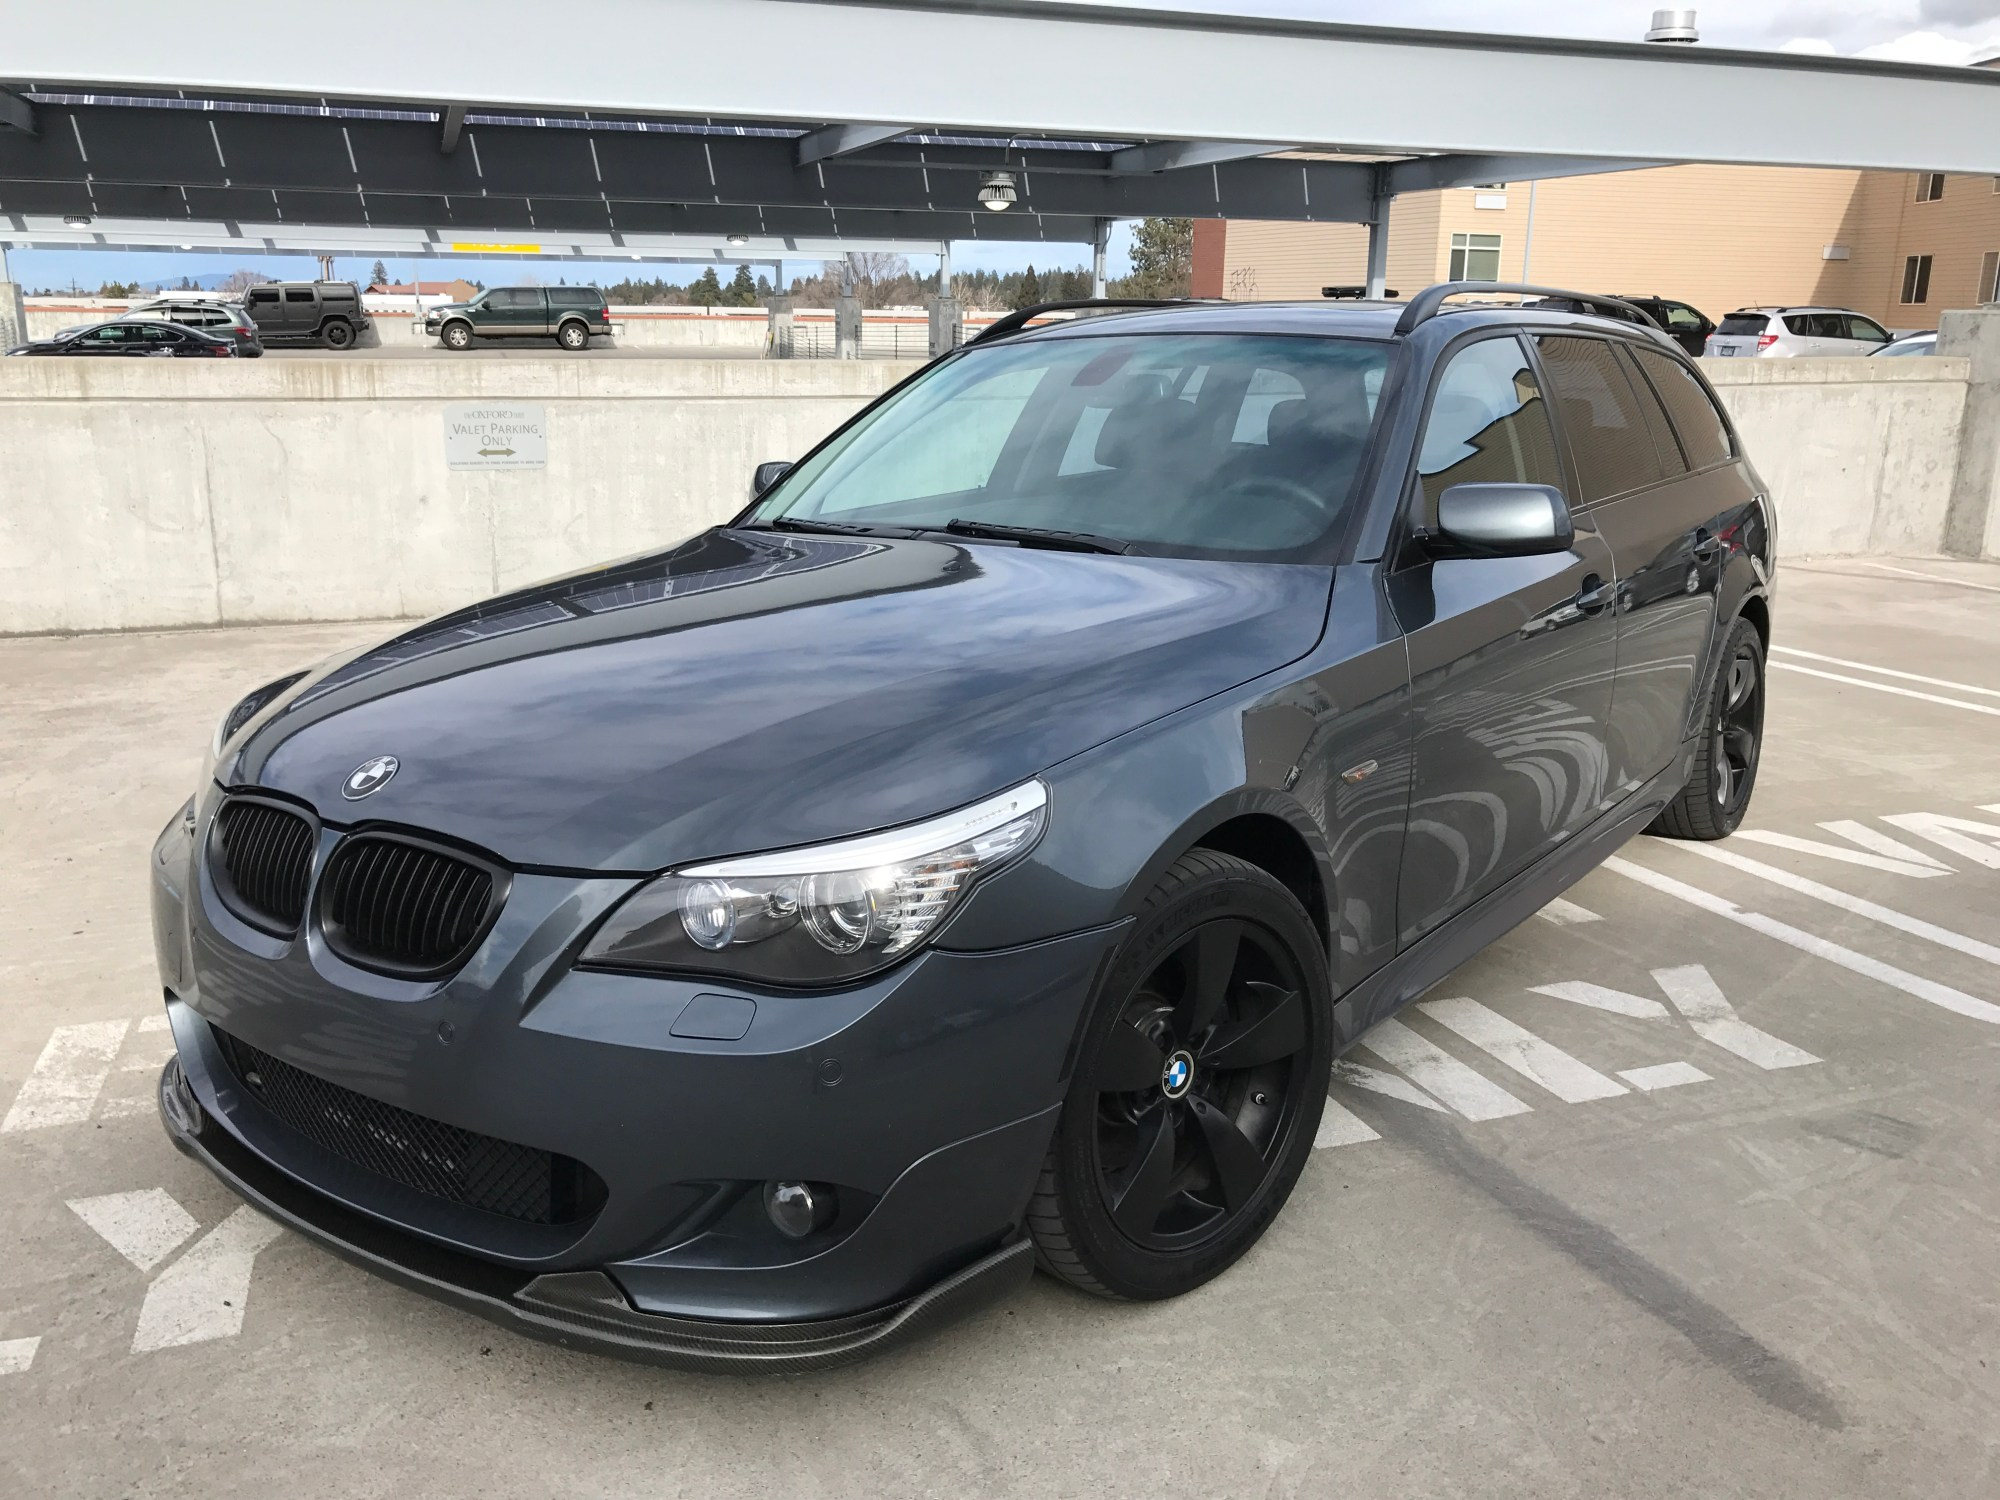 hight resolution of 151339d1491938092 2008 bmw 535xi m sport awd wagon grey e61 img 8656